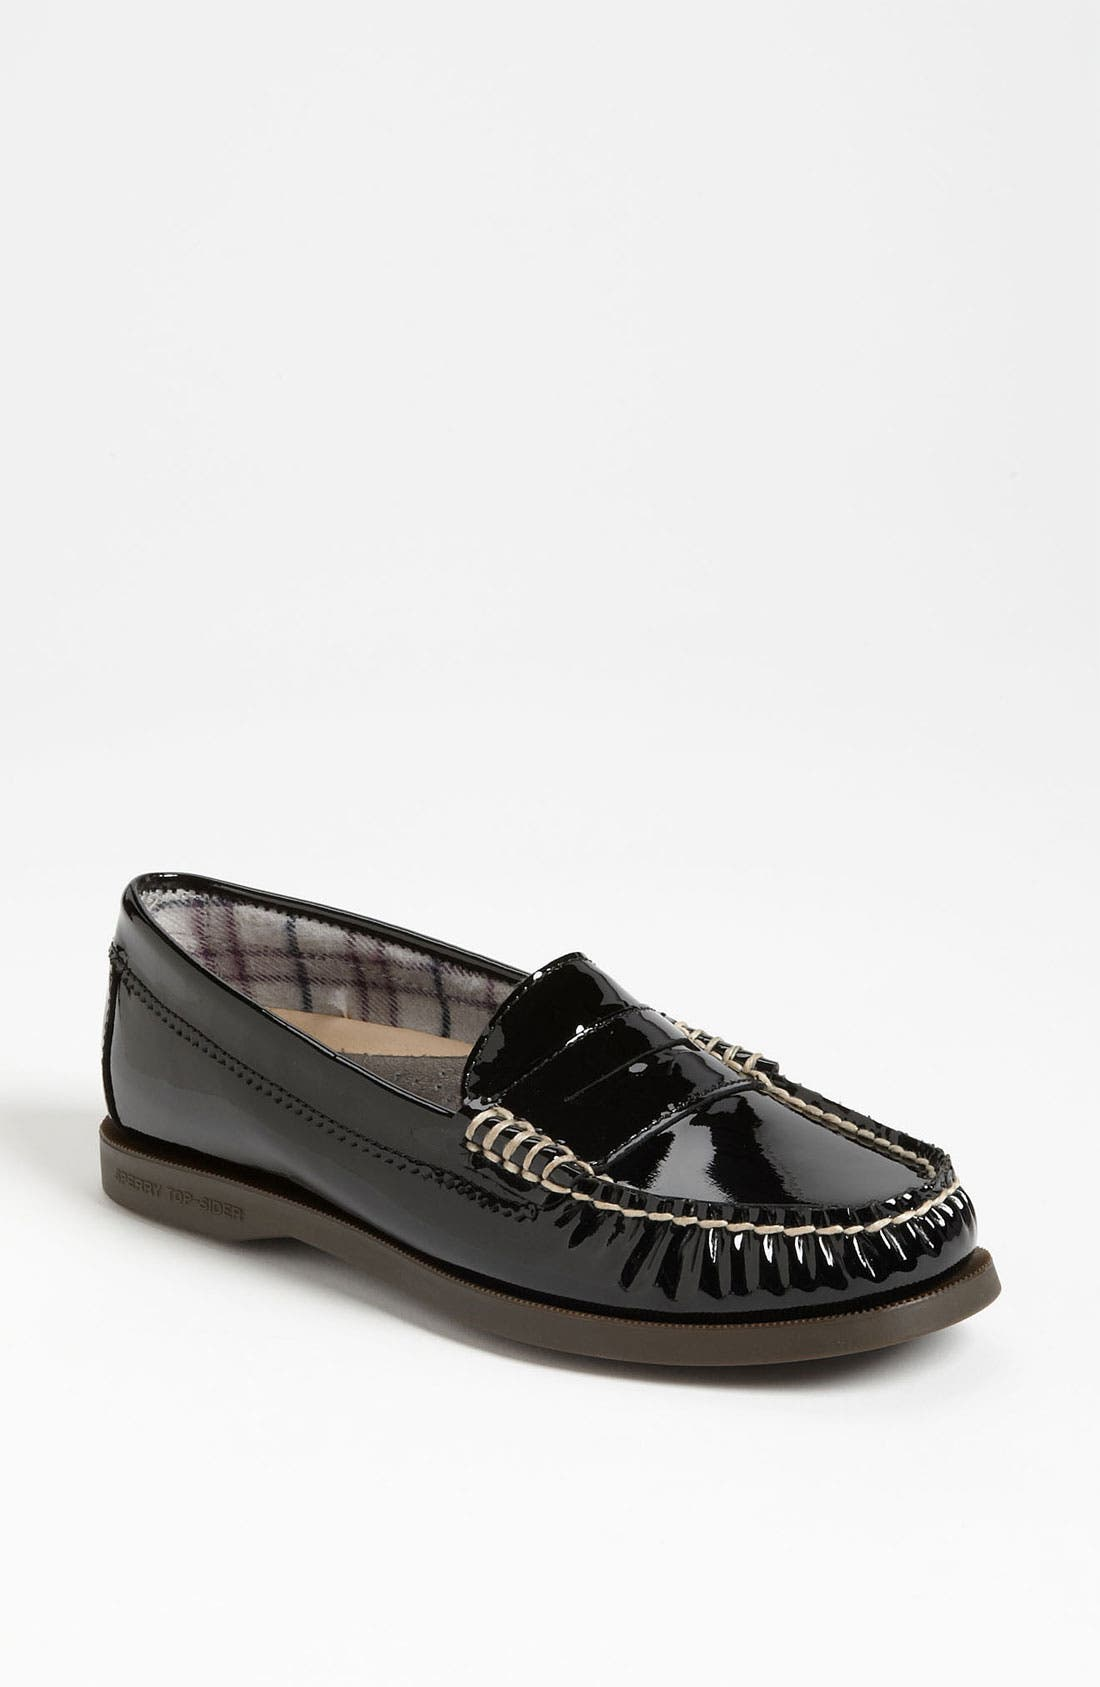 Alternate Image 1 Selected - Sperry Top-Sider® 'Hayden' Penny Loafer